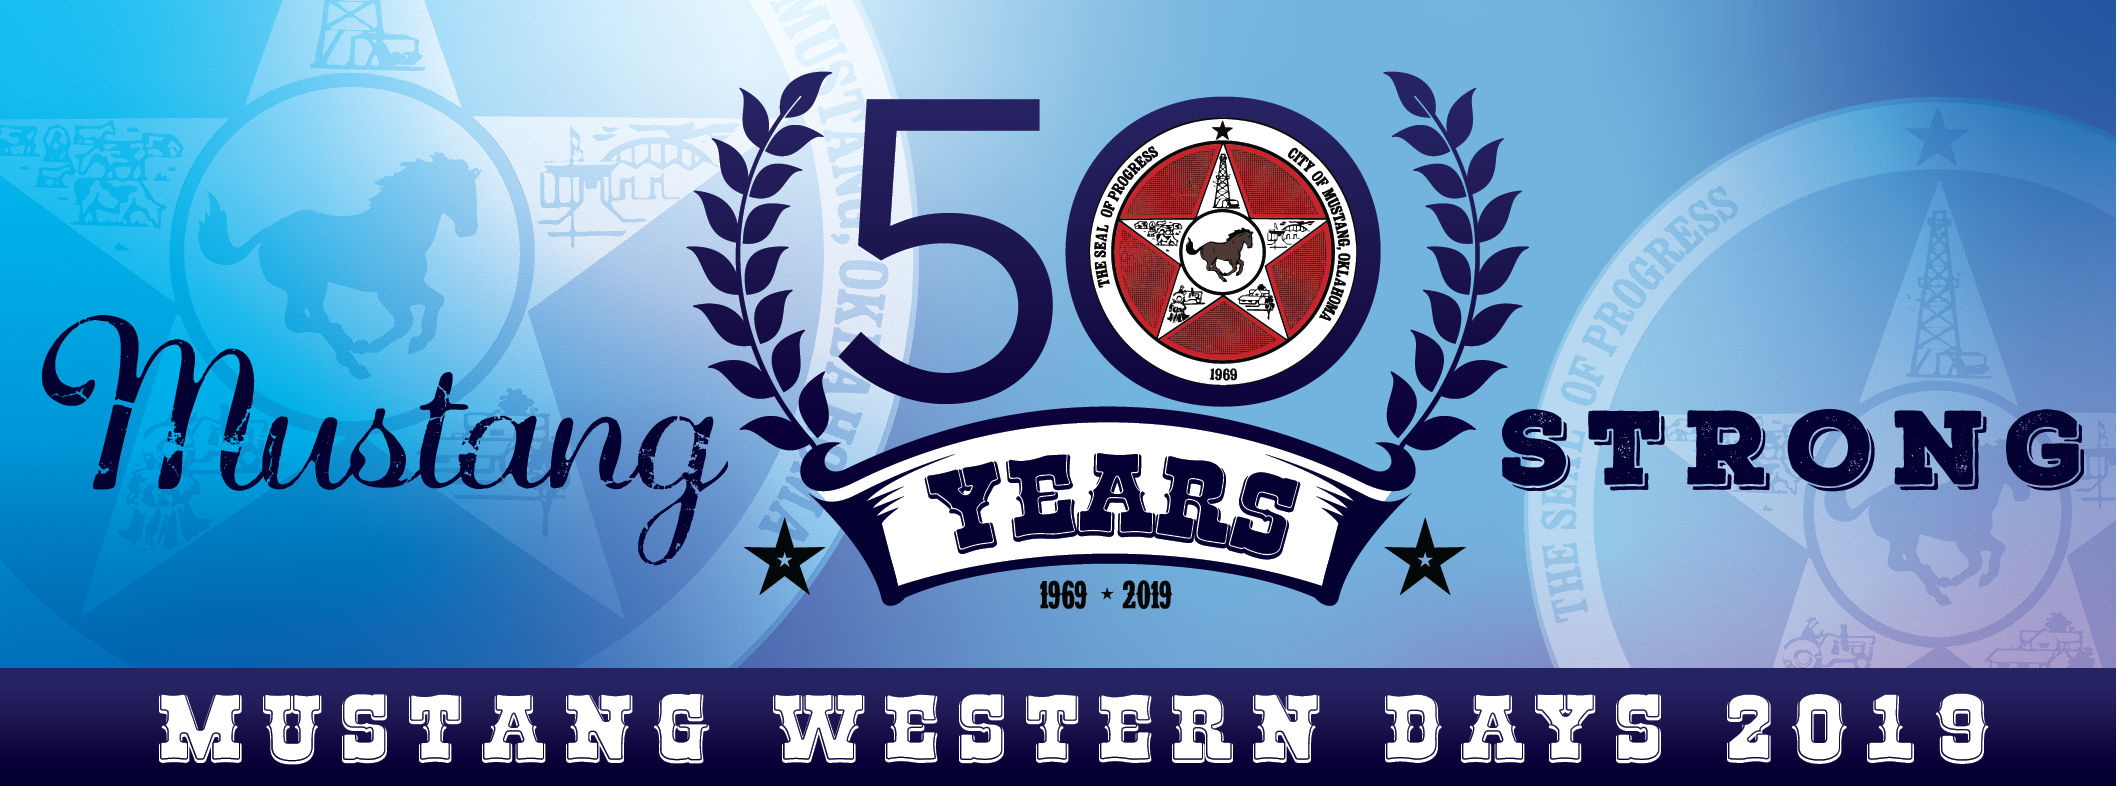 Western Days: September 6th – 7th, 2019